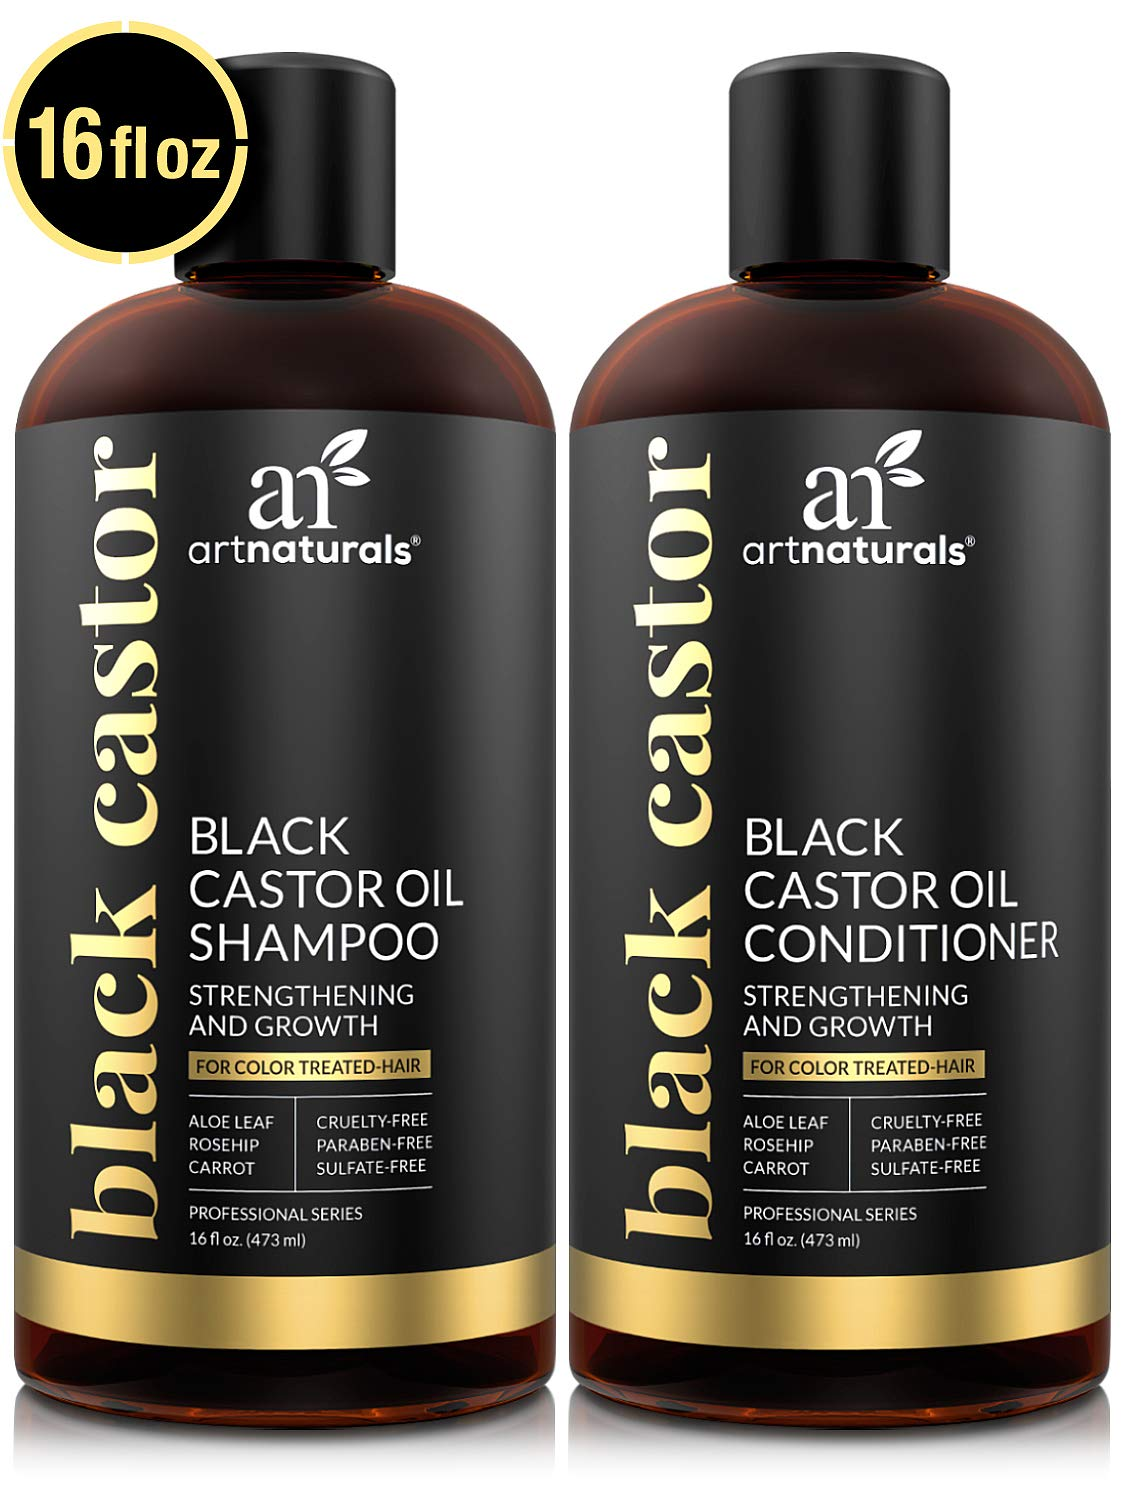 ArtNaturals Black Castor-Oil Shampoo and Conditioner - (2 x 16 Fl Oz / 473ml) - Treatment to Strengthen, Grow and Restore Dry and Damaged Hair - Jamaican Castor by ArtNaturals